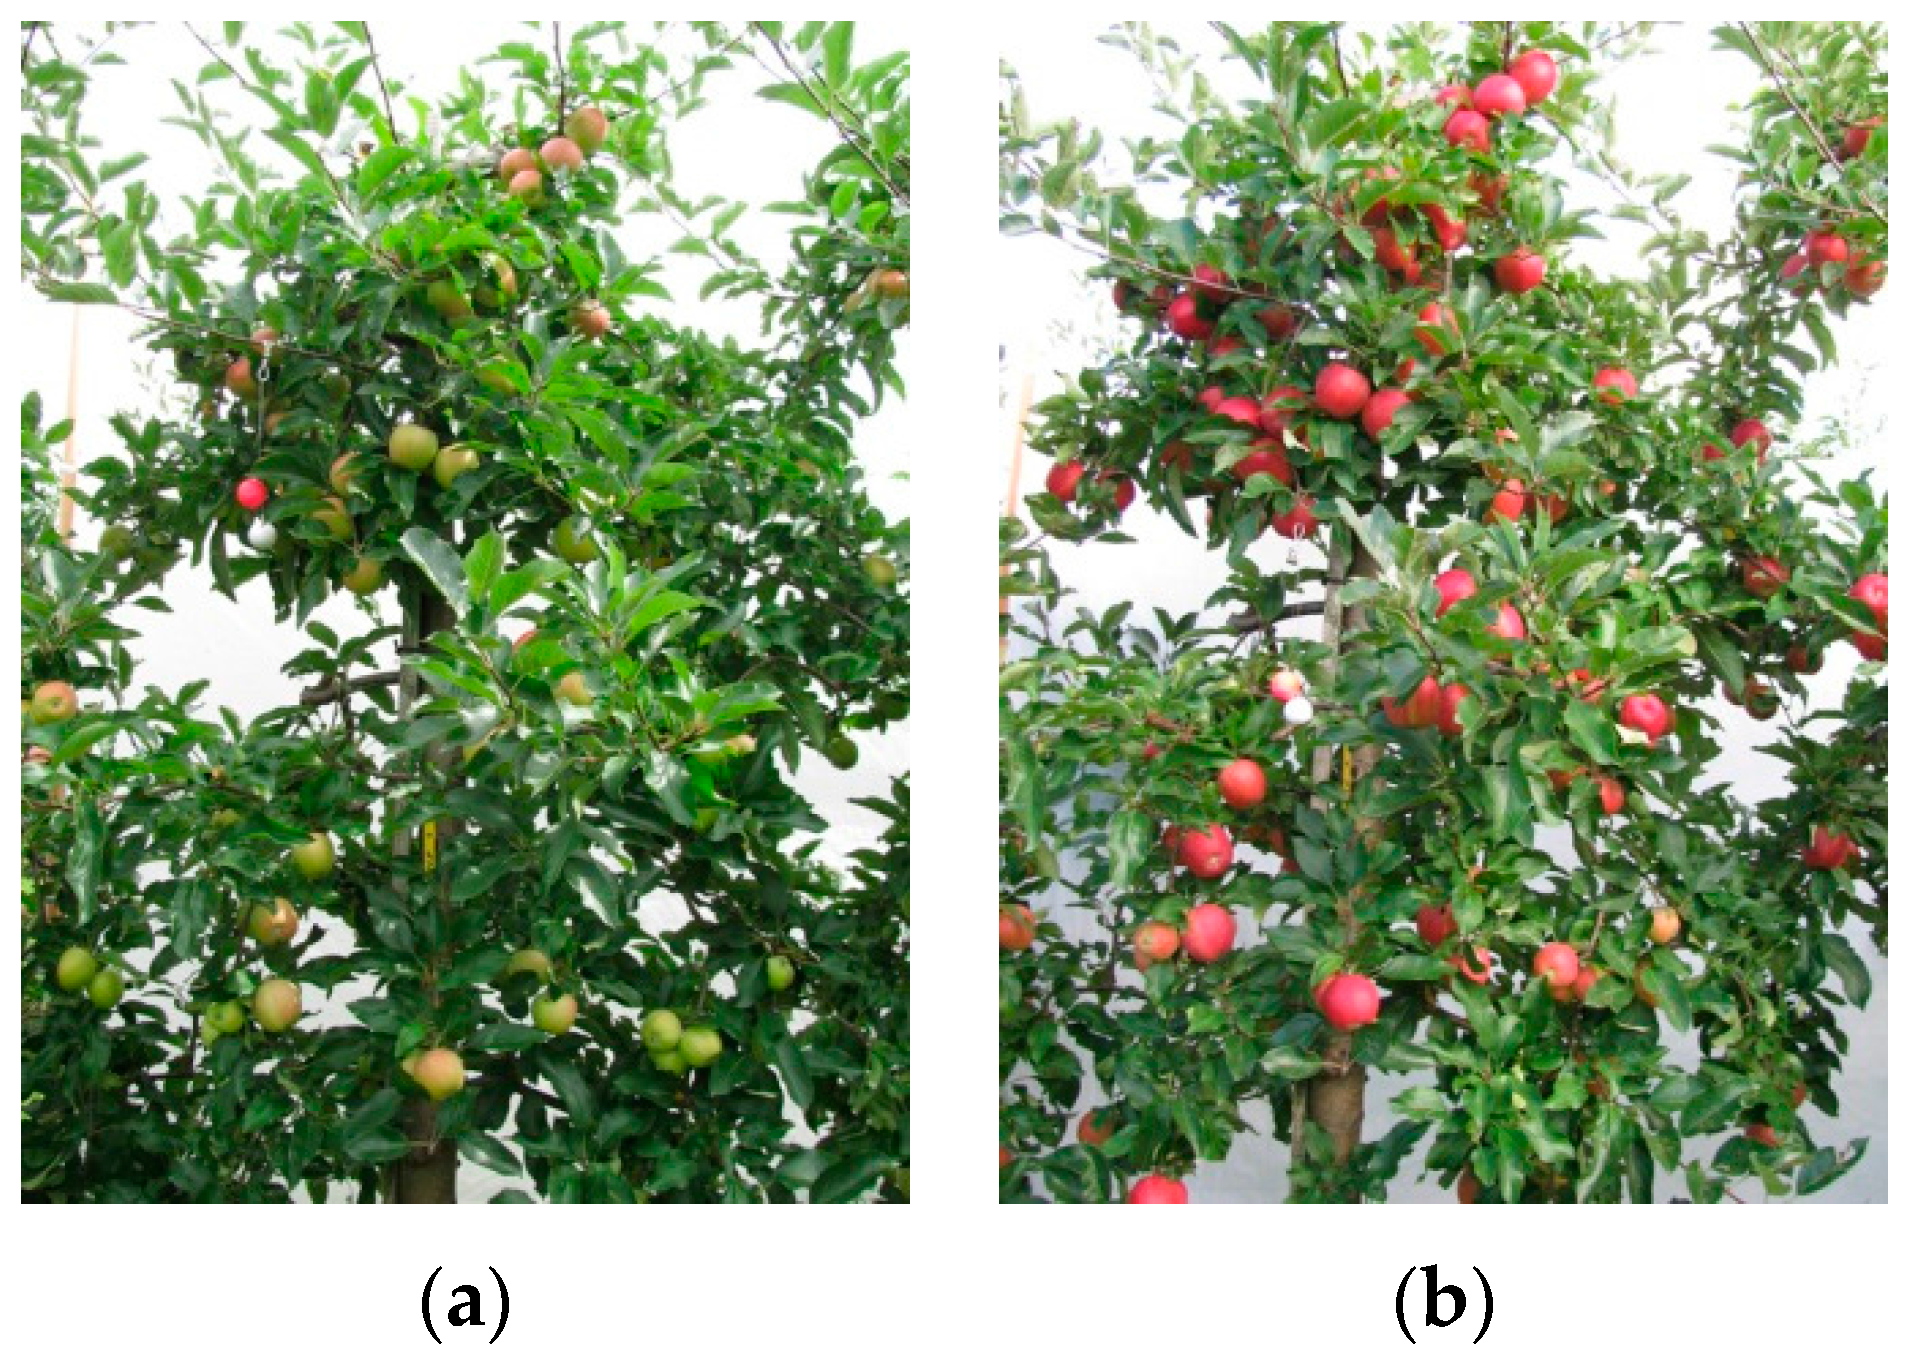 J Imaging Free Full Text Early Yield Prediction Using Image Analysis Of Apple Fruit And Tree Canopy Features With Neural Networks Html